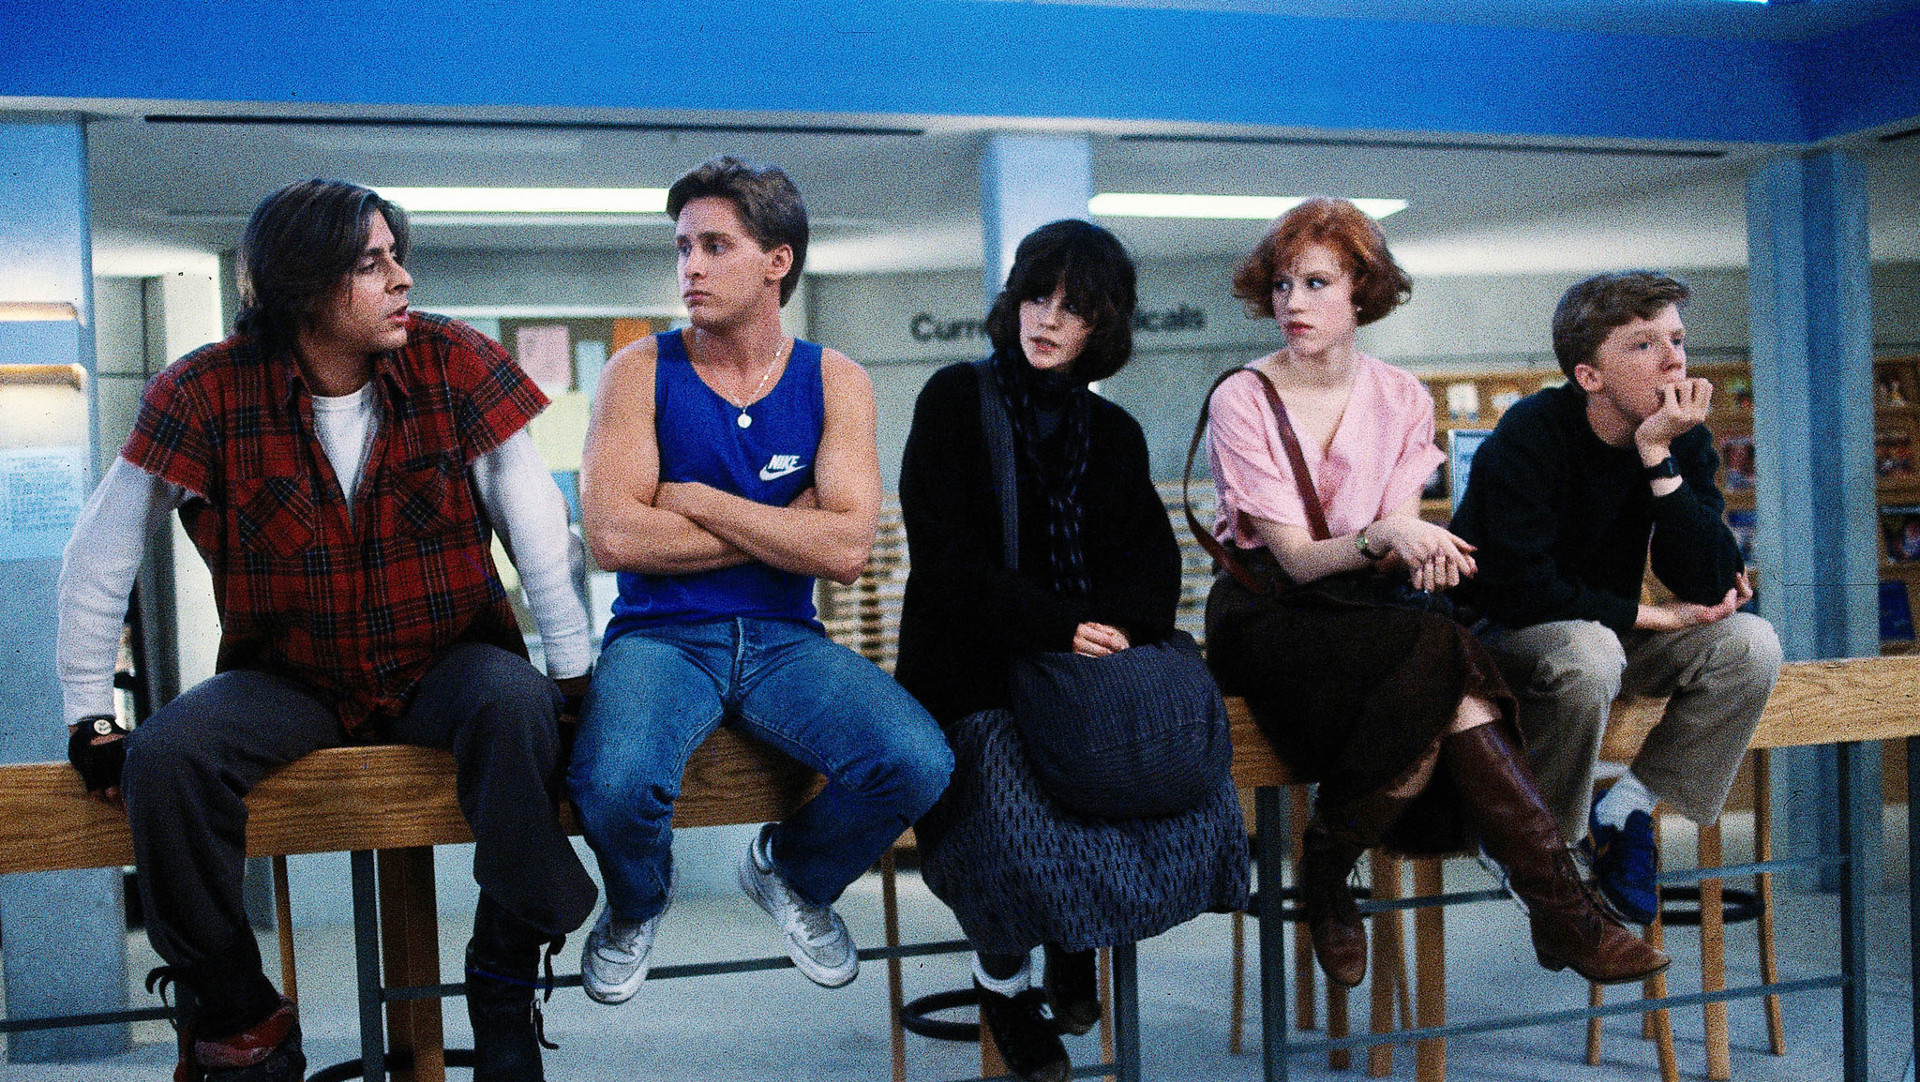 healing myths in the breakfast club The breakfast club is a 1985 american teen drama film, written and directed by john hughes the storyline follows five teenagers as they spend their but we think you're crazy to make us write this essay telling you who we think we are what do you care you see us as you want to see us in the.